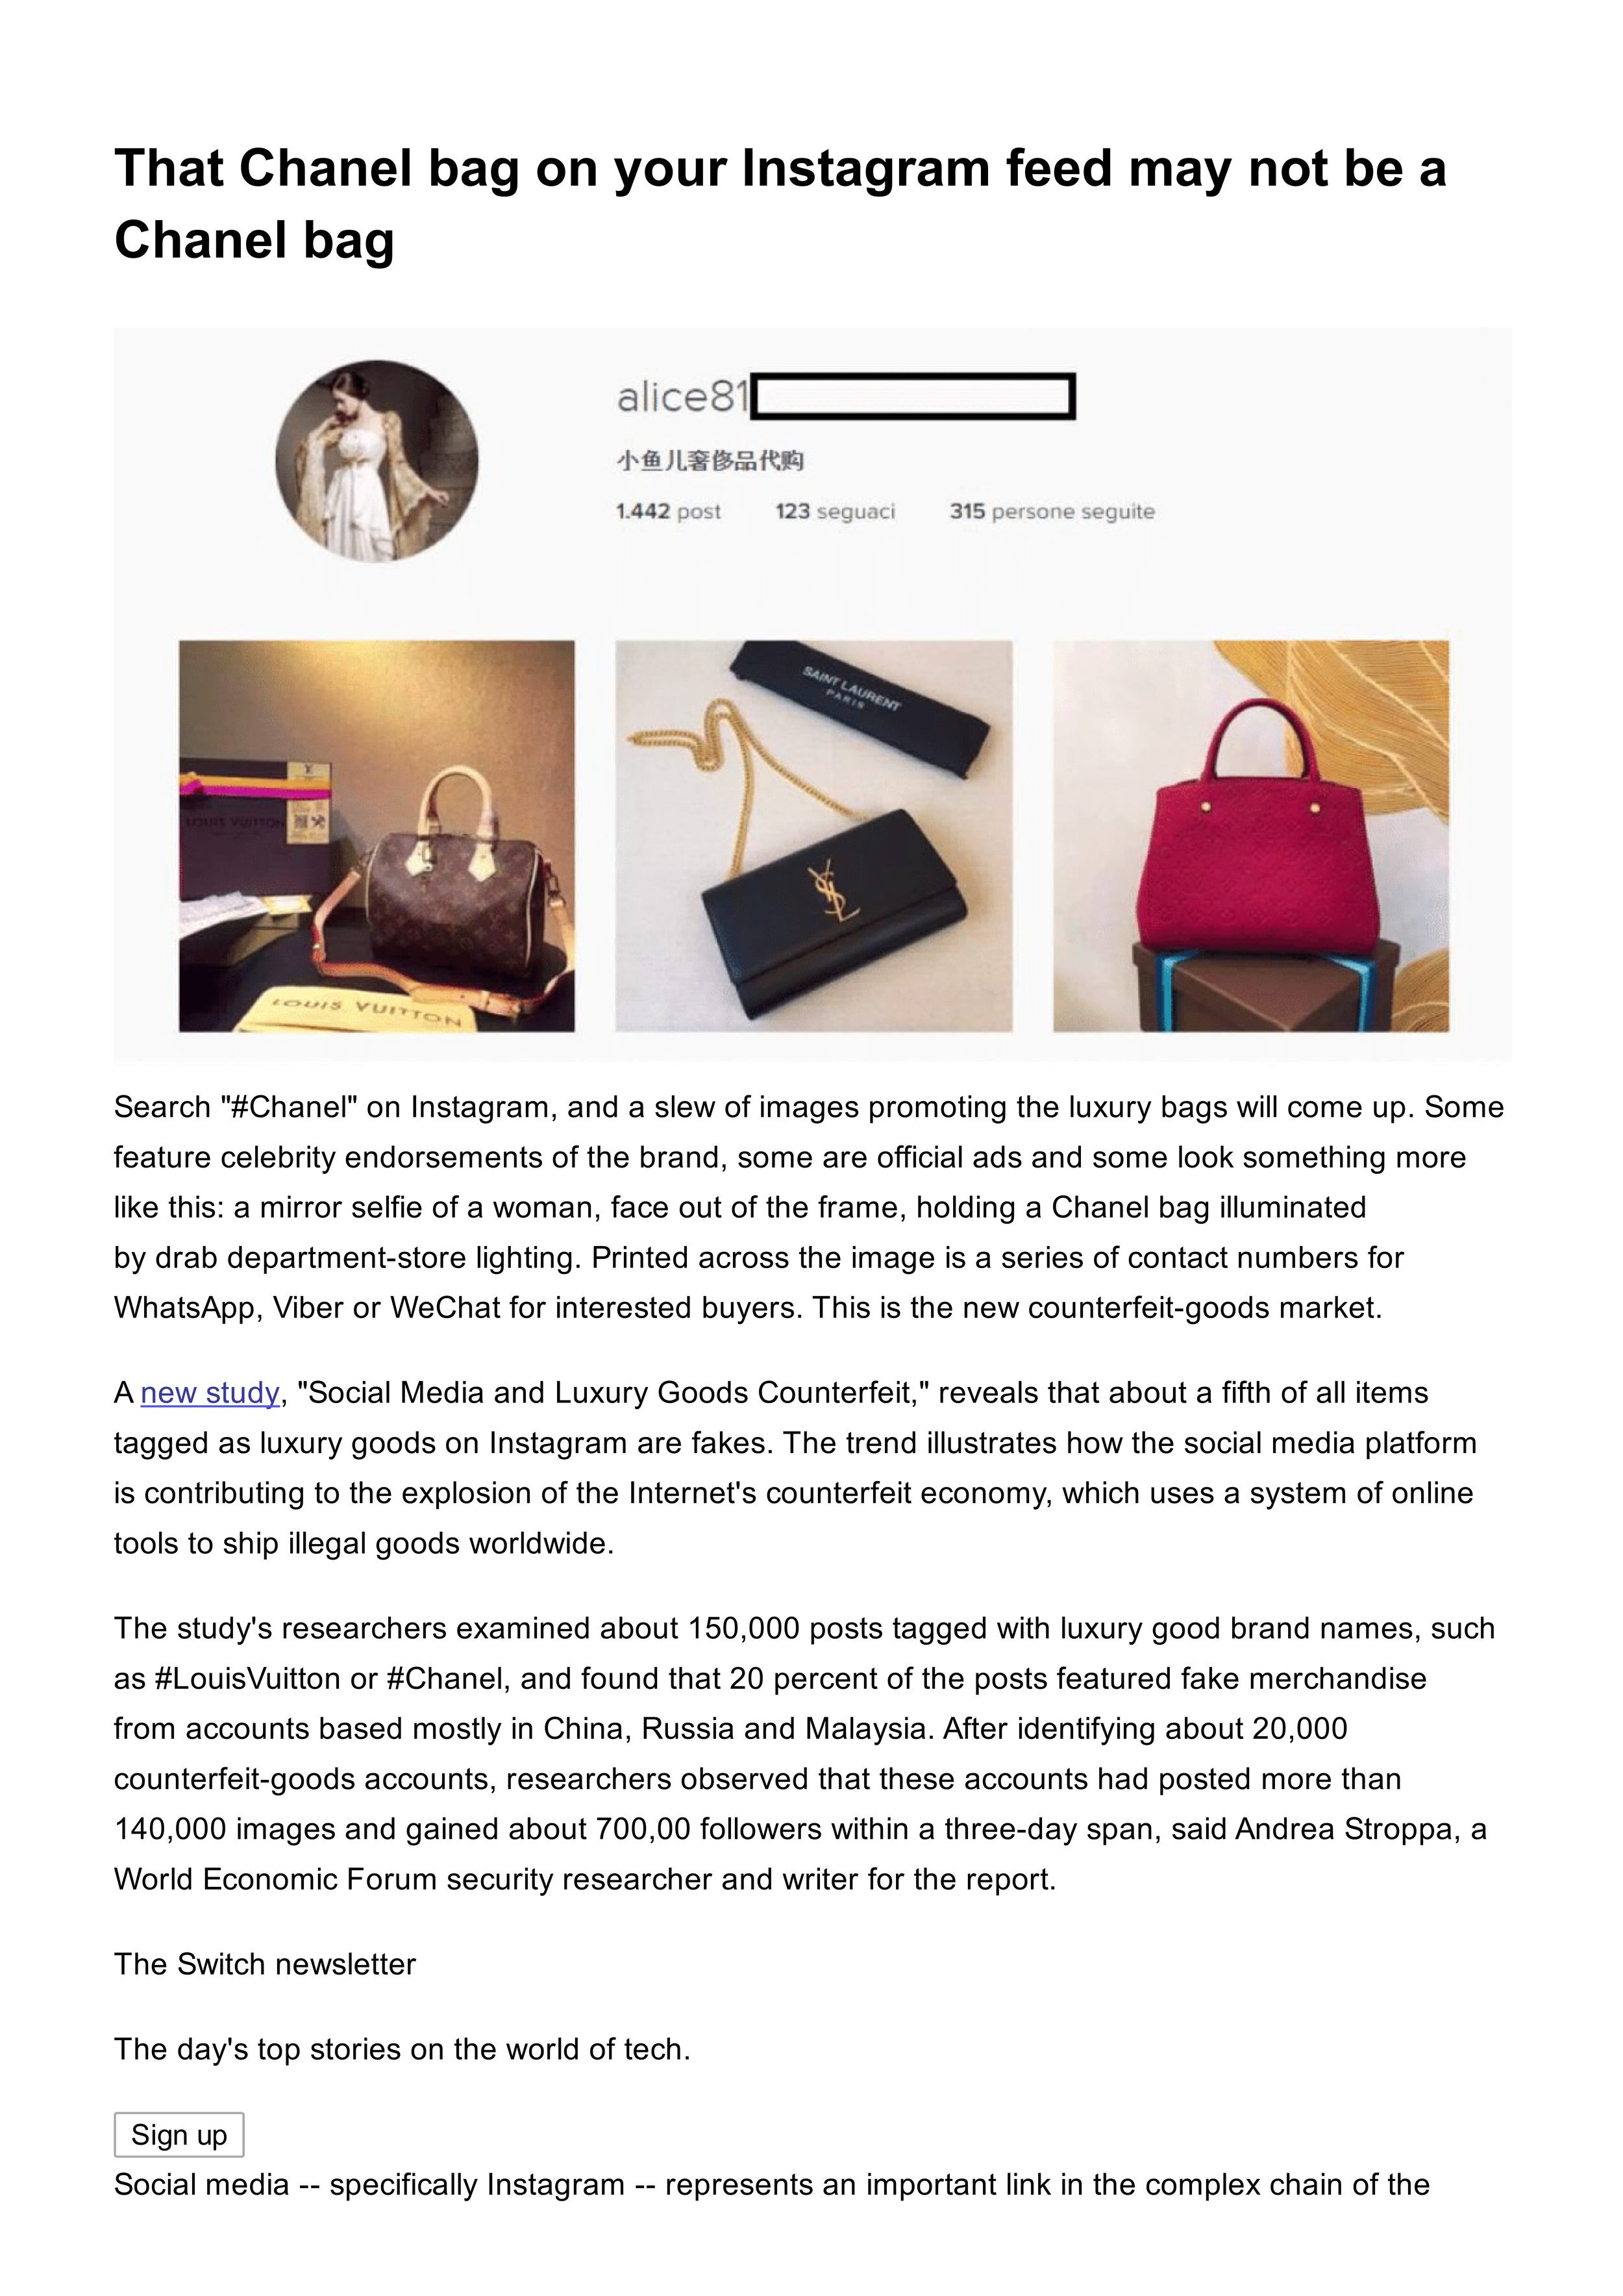 That Chanel bag on your Instagram feed may not be a Chanel bag - The Washington Post1.jpg